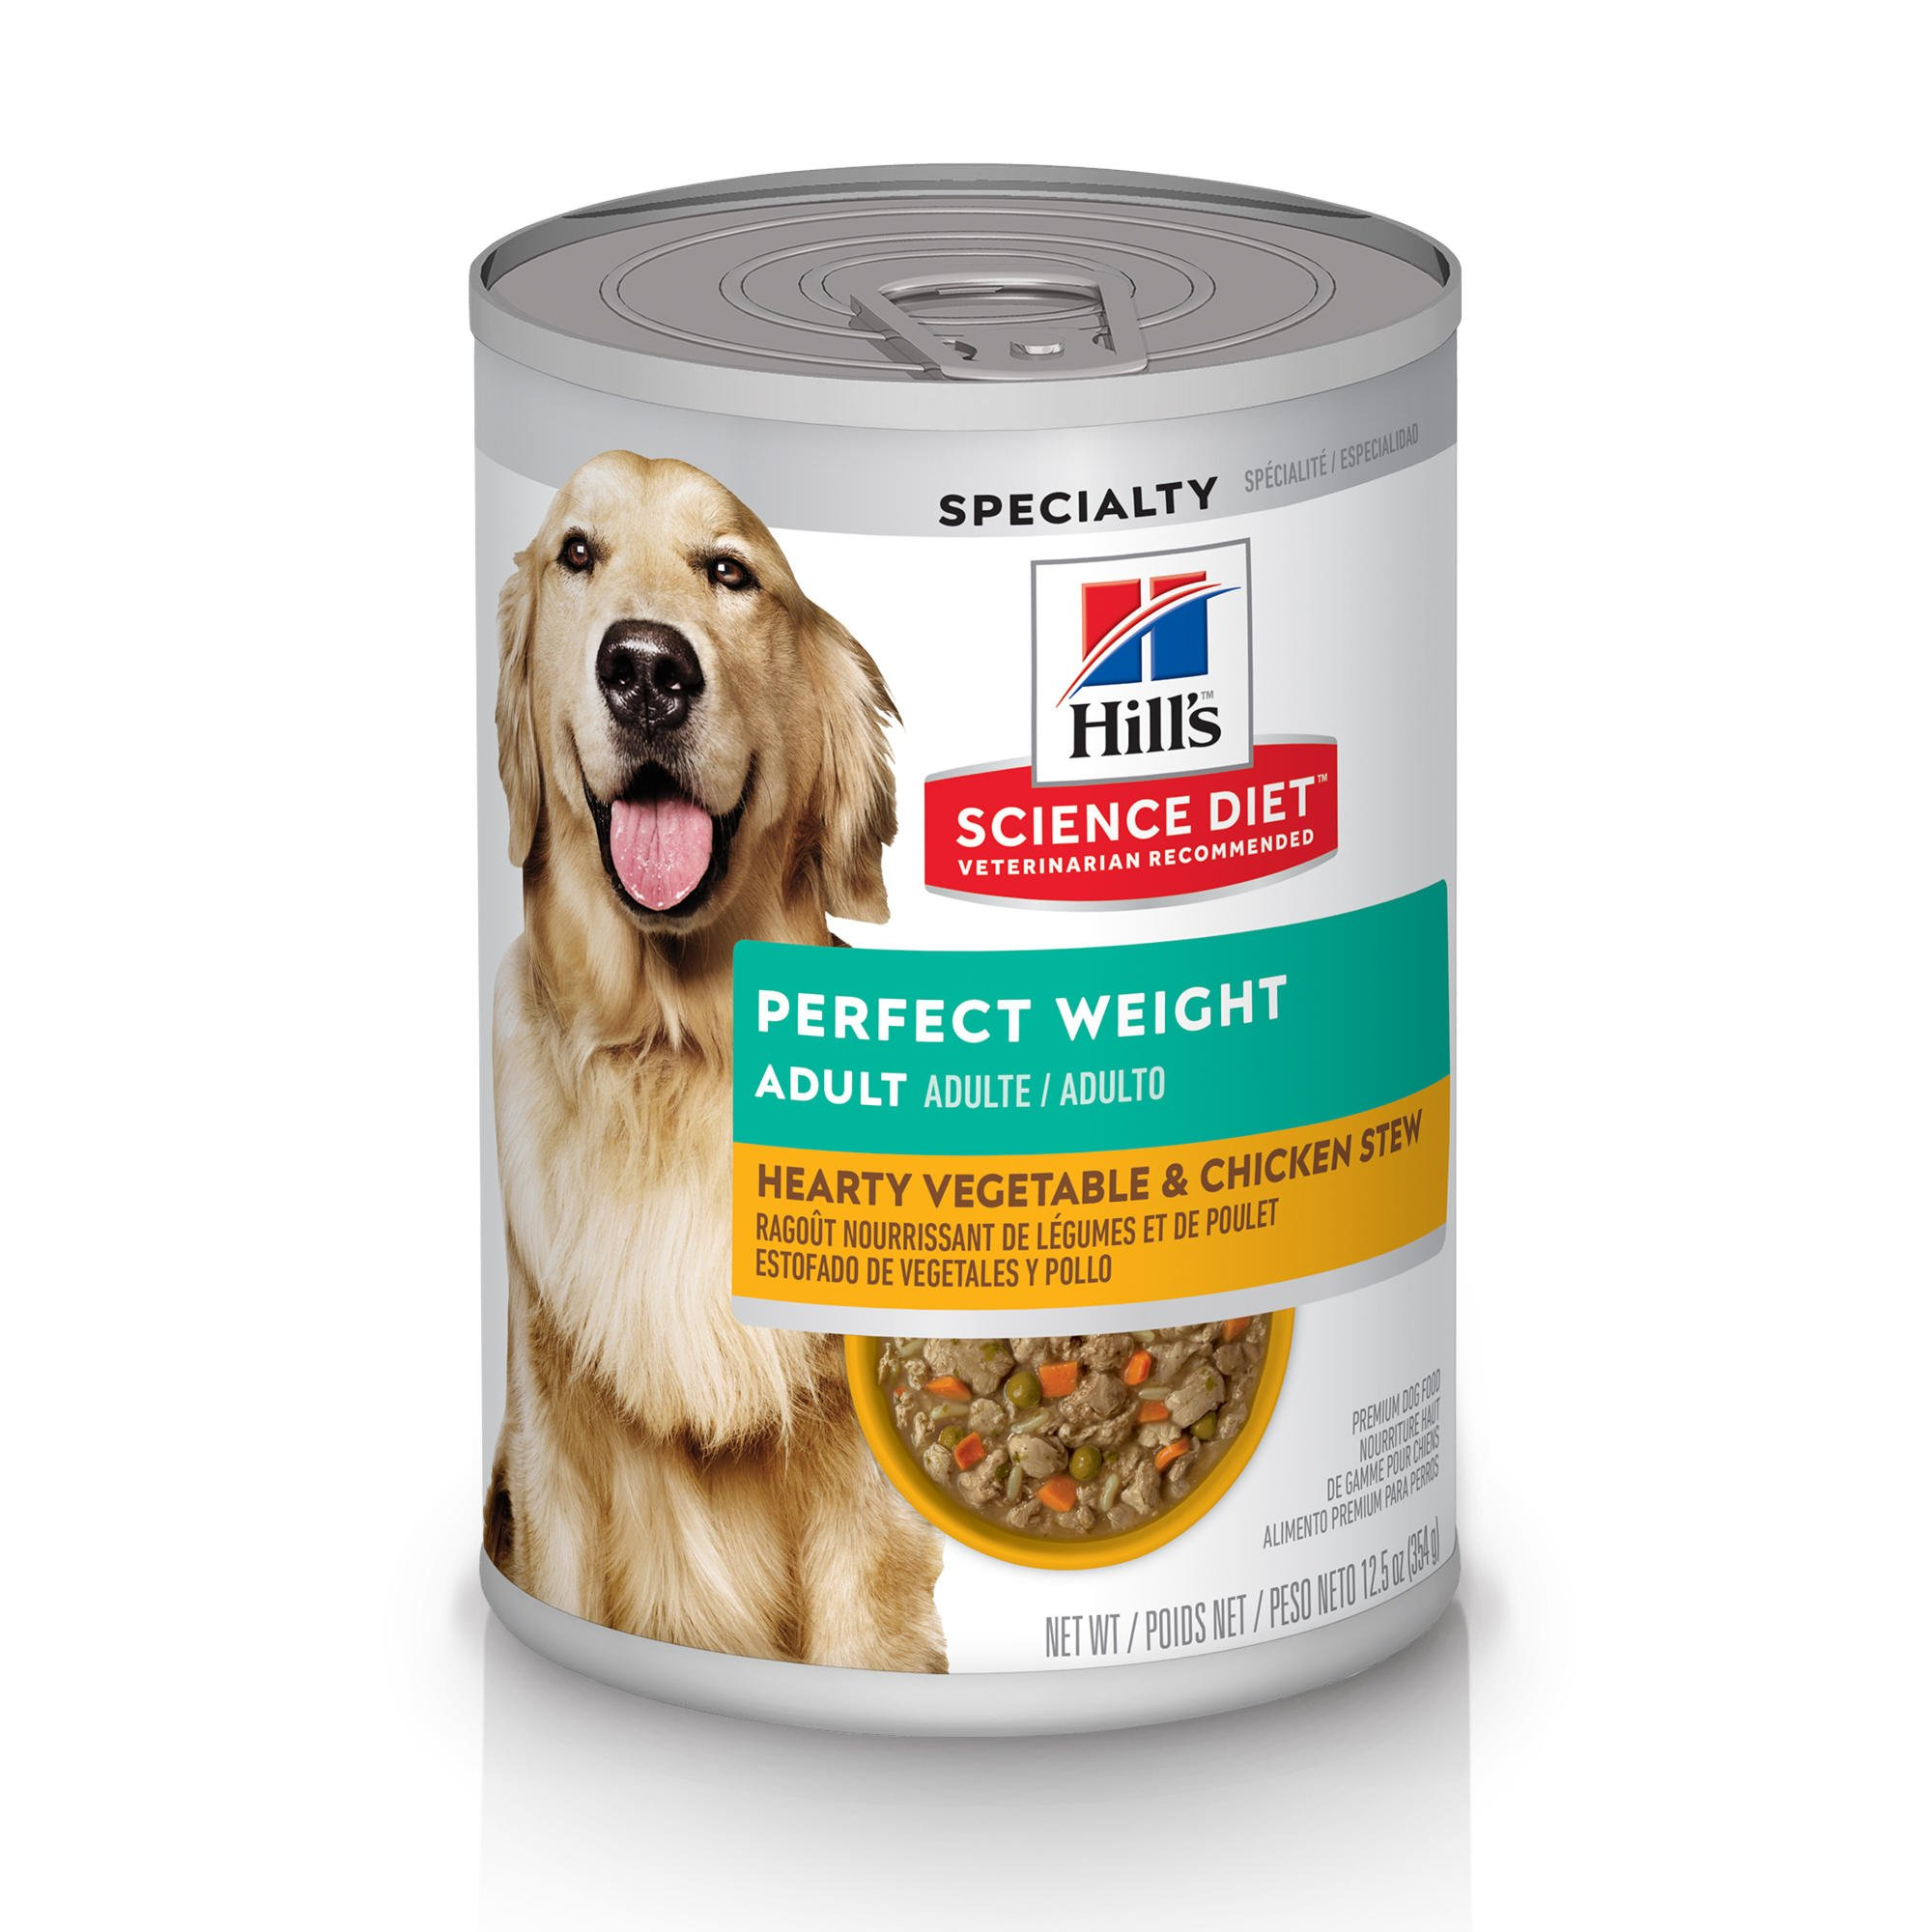 Science Diet Natural Dog Food